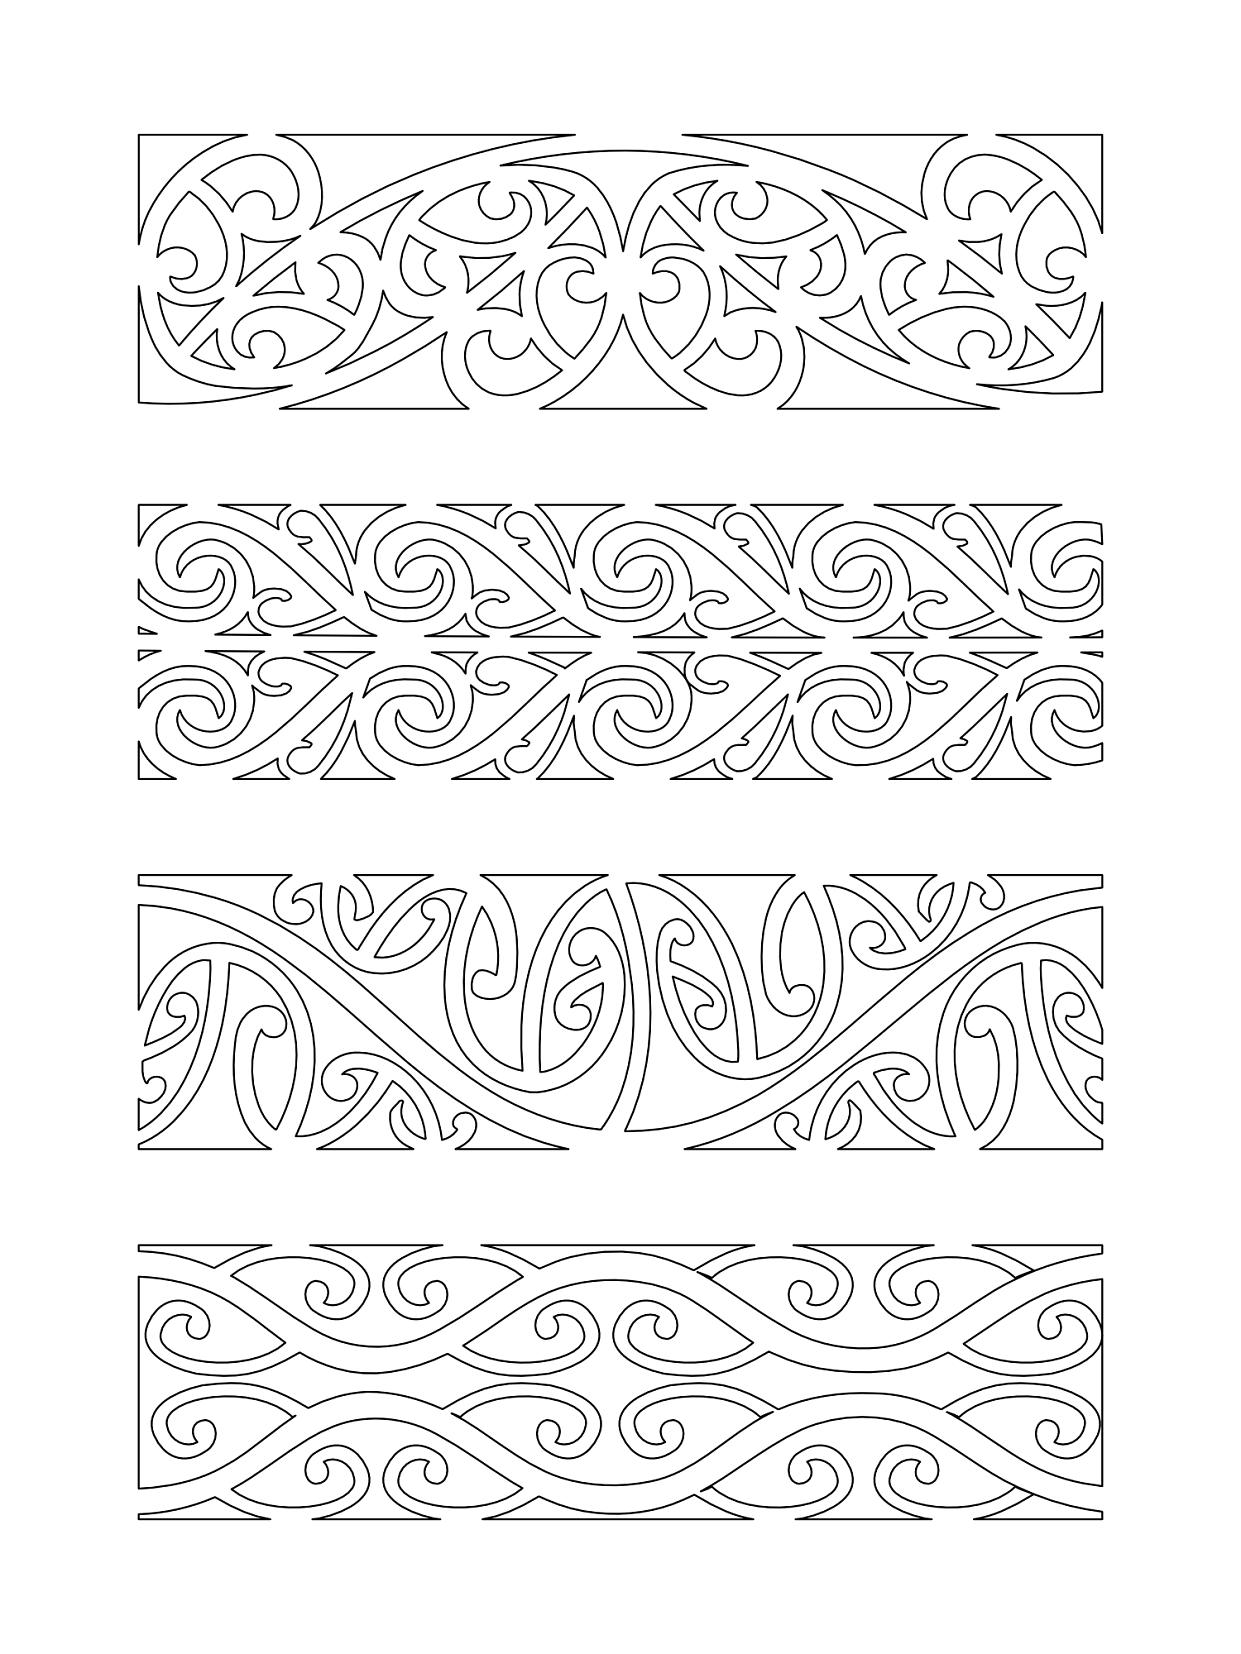 hawaiian-Designs-And-Patterns-Maori-Designs-Kowhaiwhai-Patterns-Hawaii-Dermatology-wallpaper-wp3006518